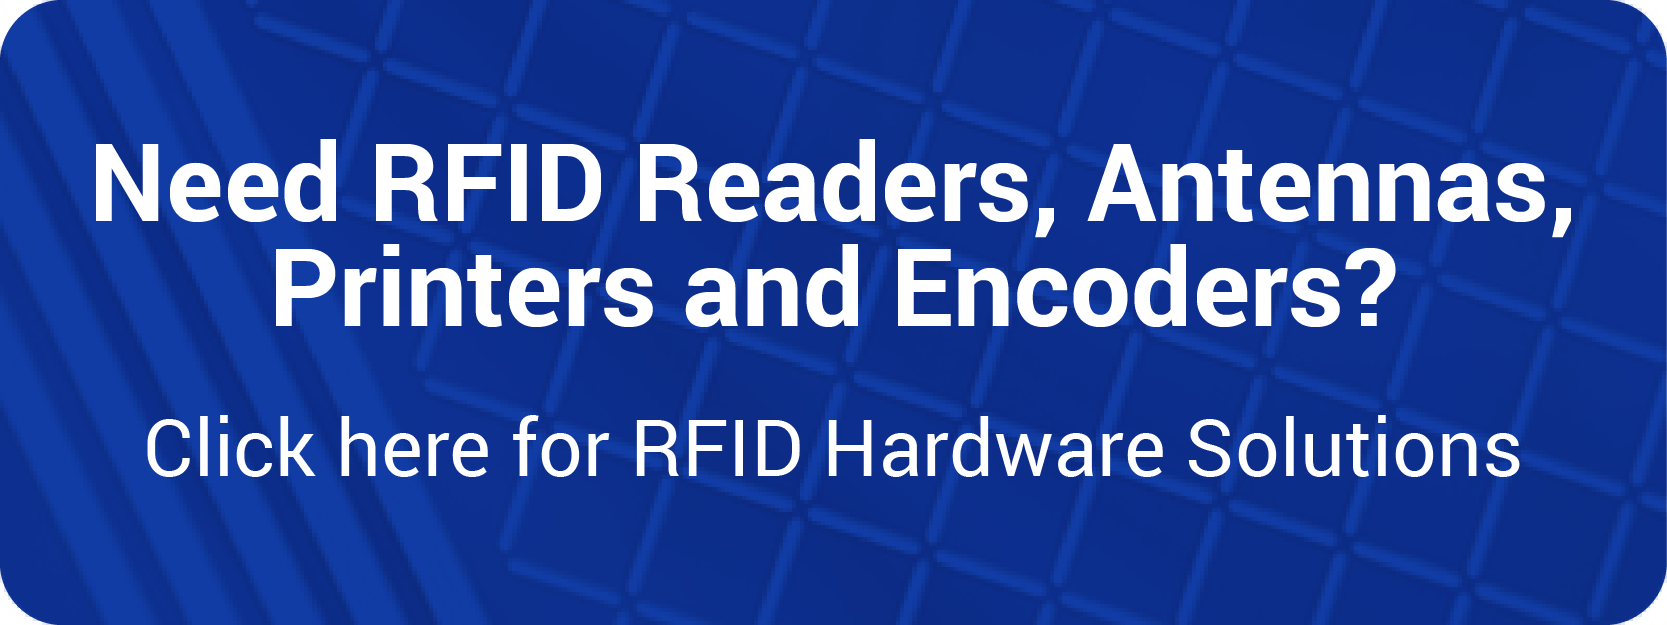 Need RFID Readers, Antennas, Printers and Encoders? Click Here